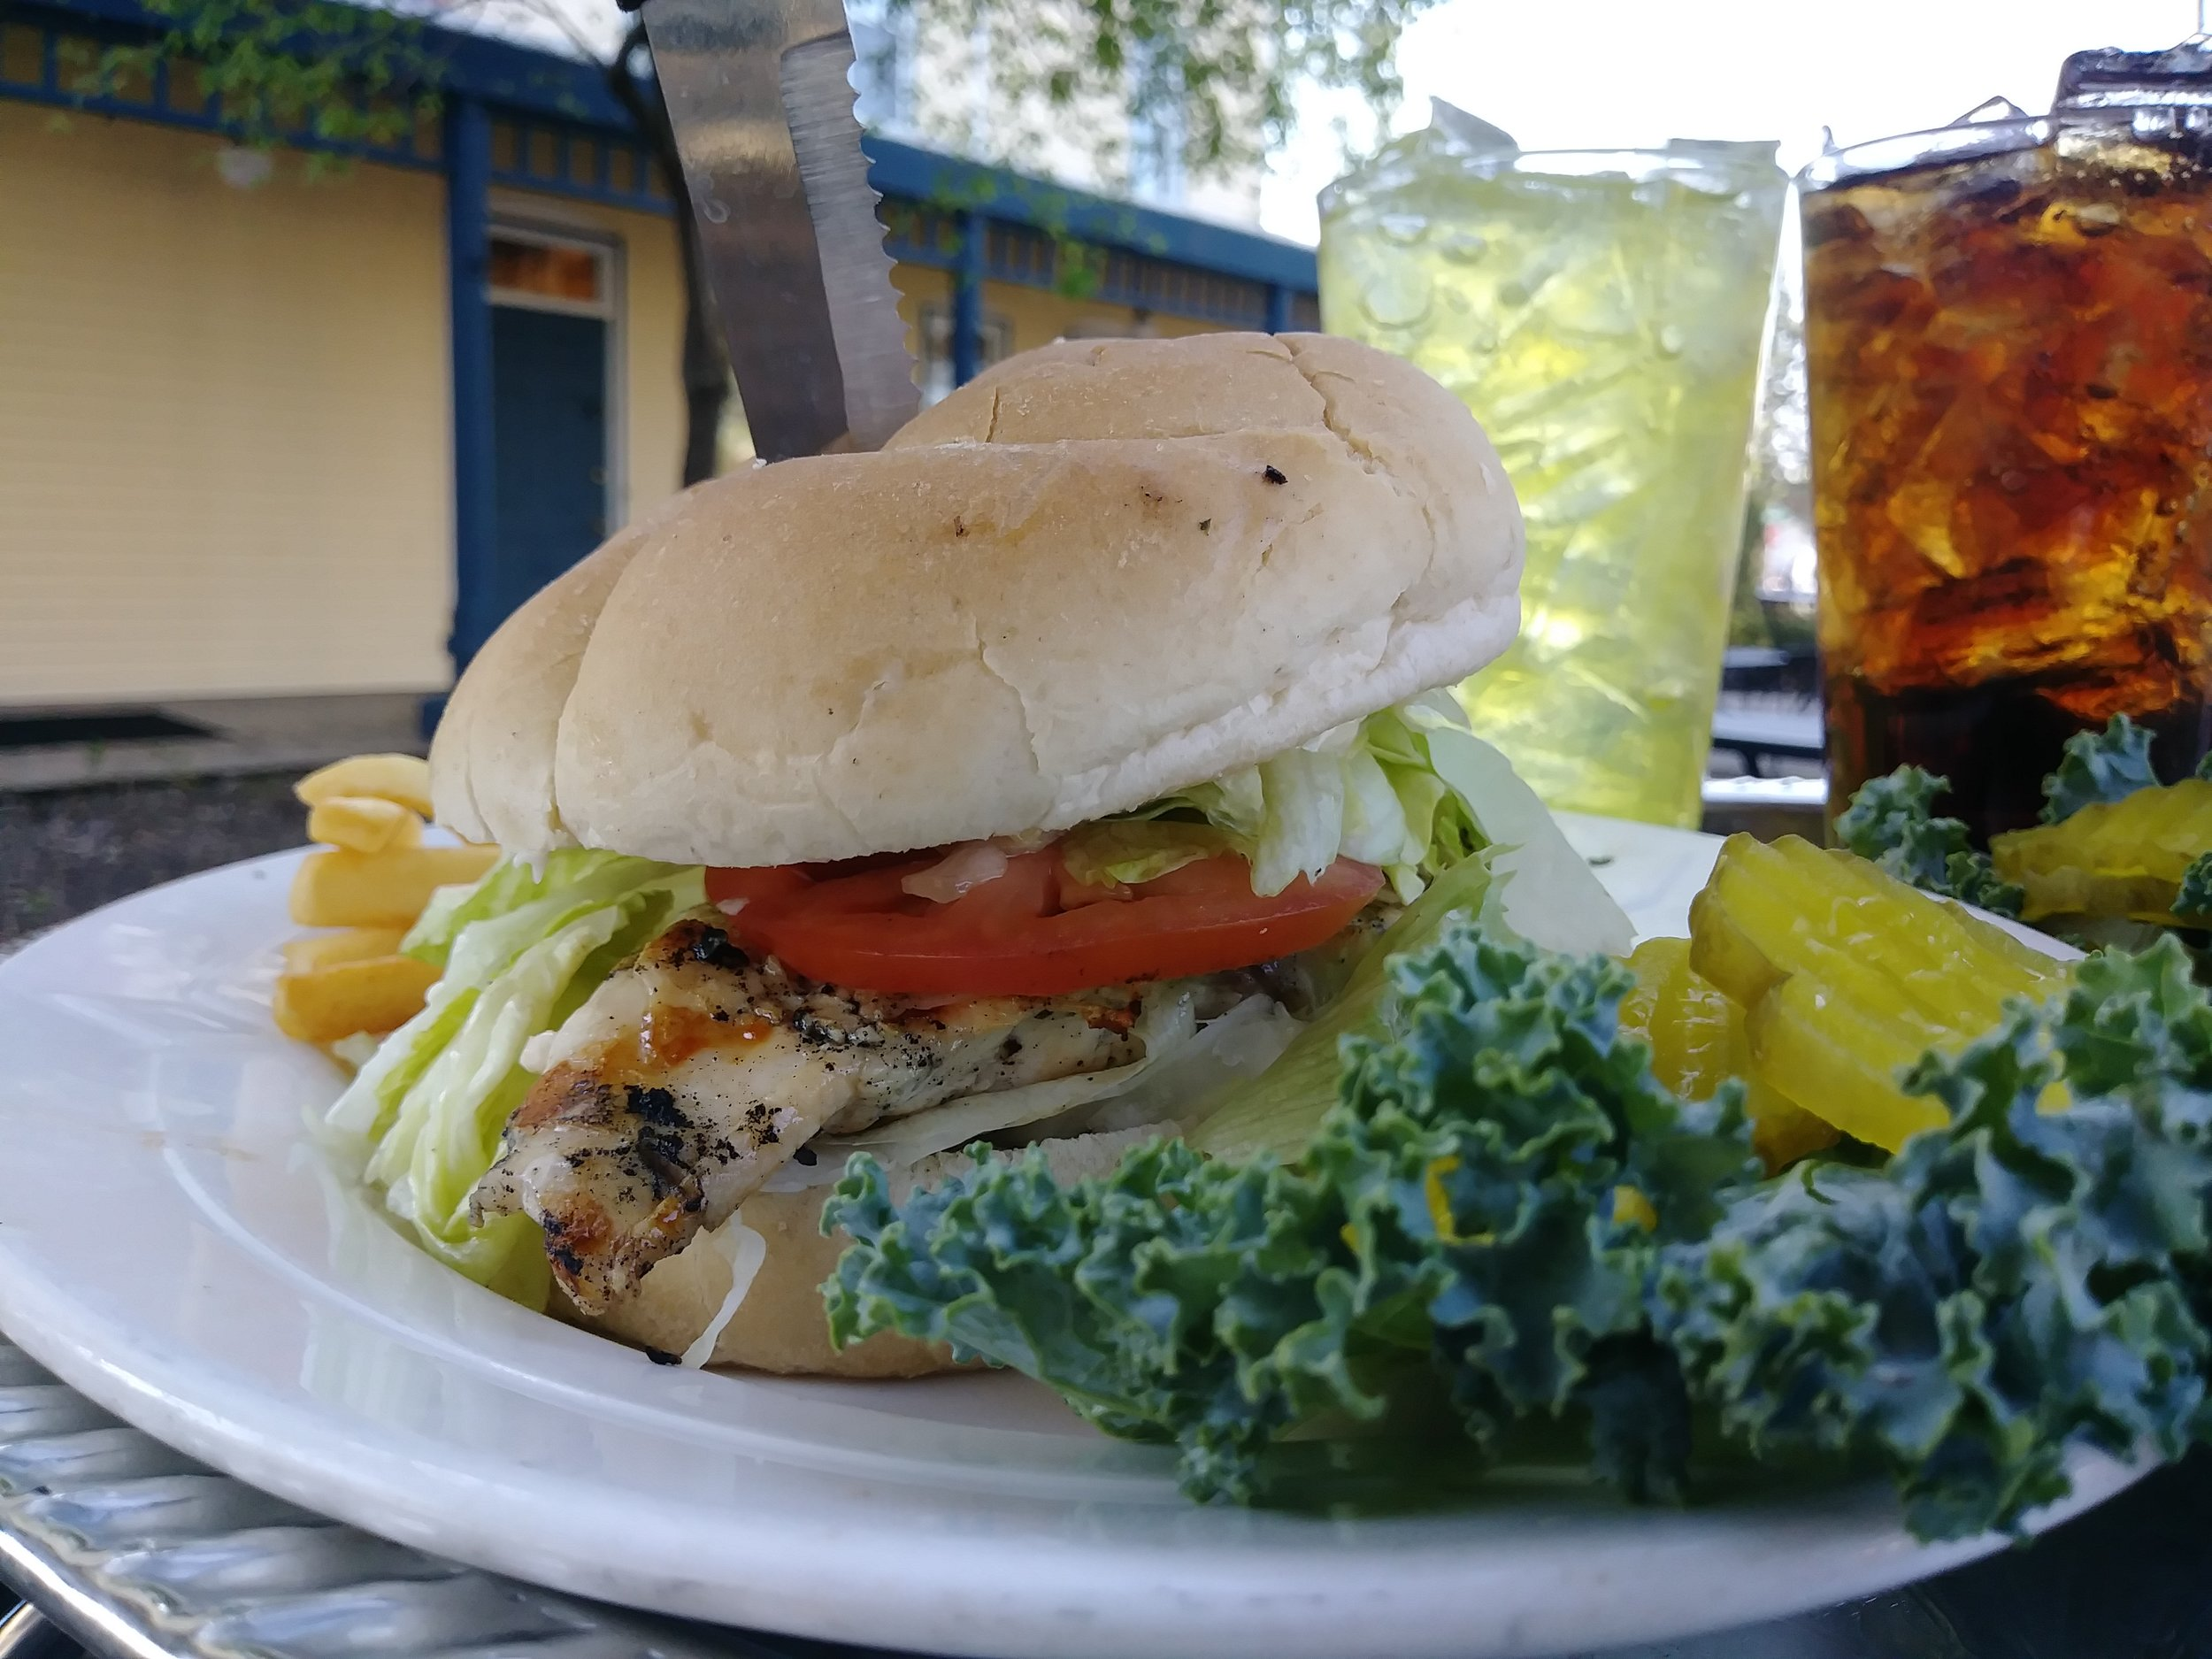 grilled chicken sandwich - 6 ounce grilled chicken breast broiled or deep fried; topped with lettuce, tomato, mayo, & served on a Kaiser Roll $10.99